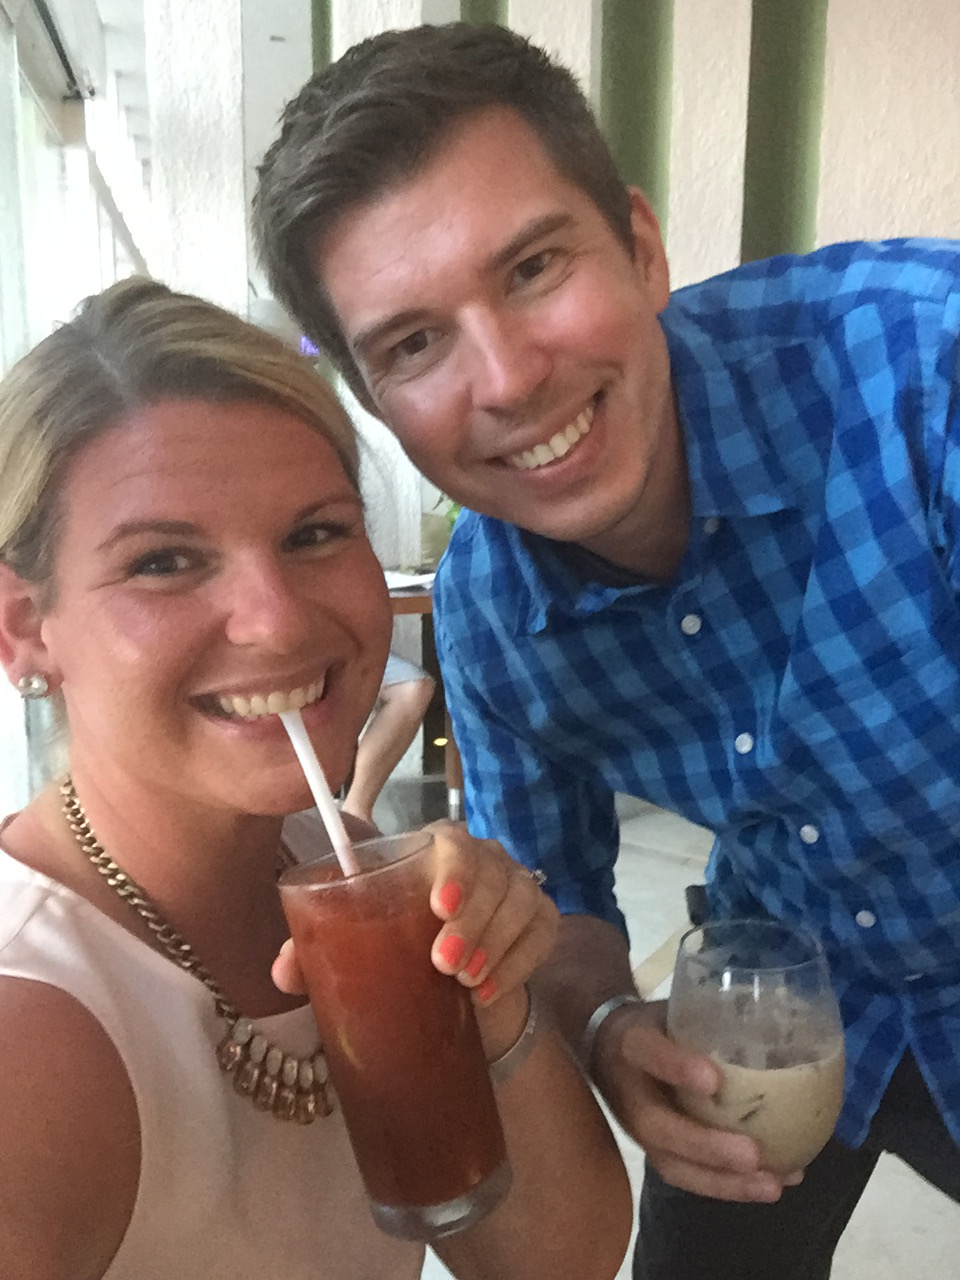 Our drinks of choice on vaca.. bloody marys and white russians, which couldnt be more random for either of us haha